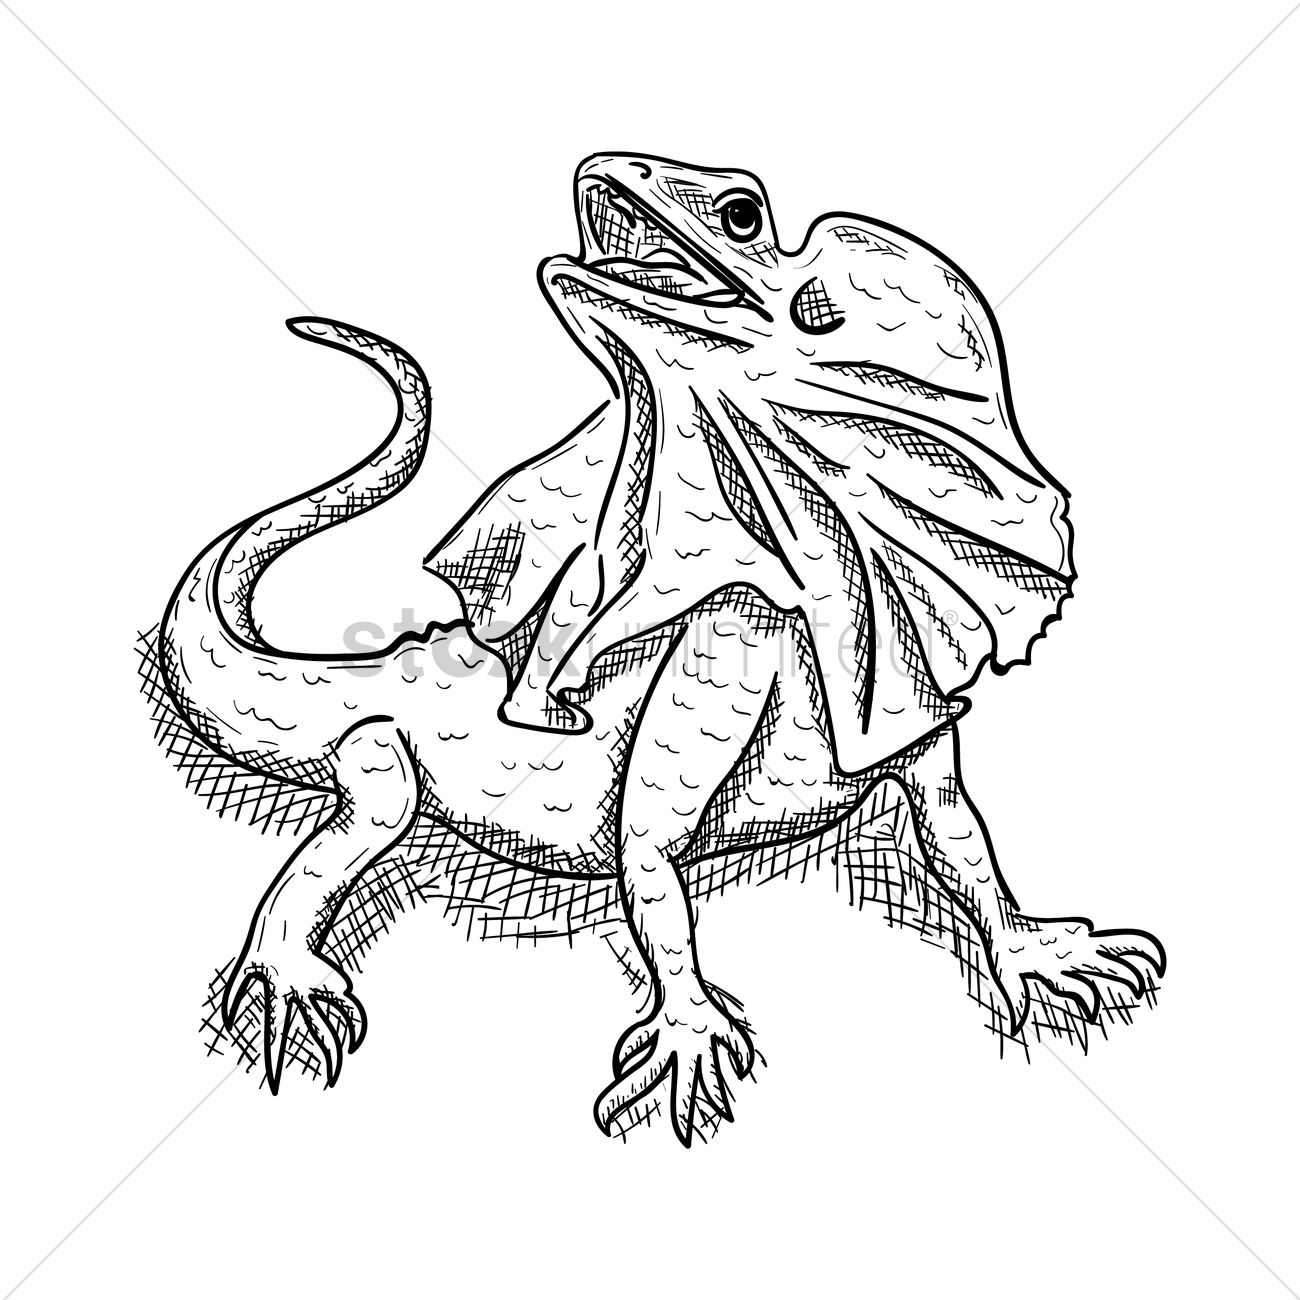 1300x1300 Art Drawing Drawings Sketching Outline Outlines Line Art Reptile